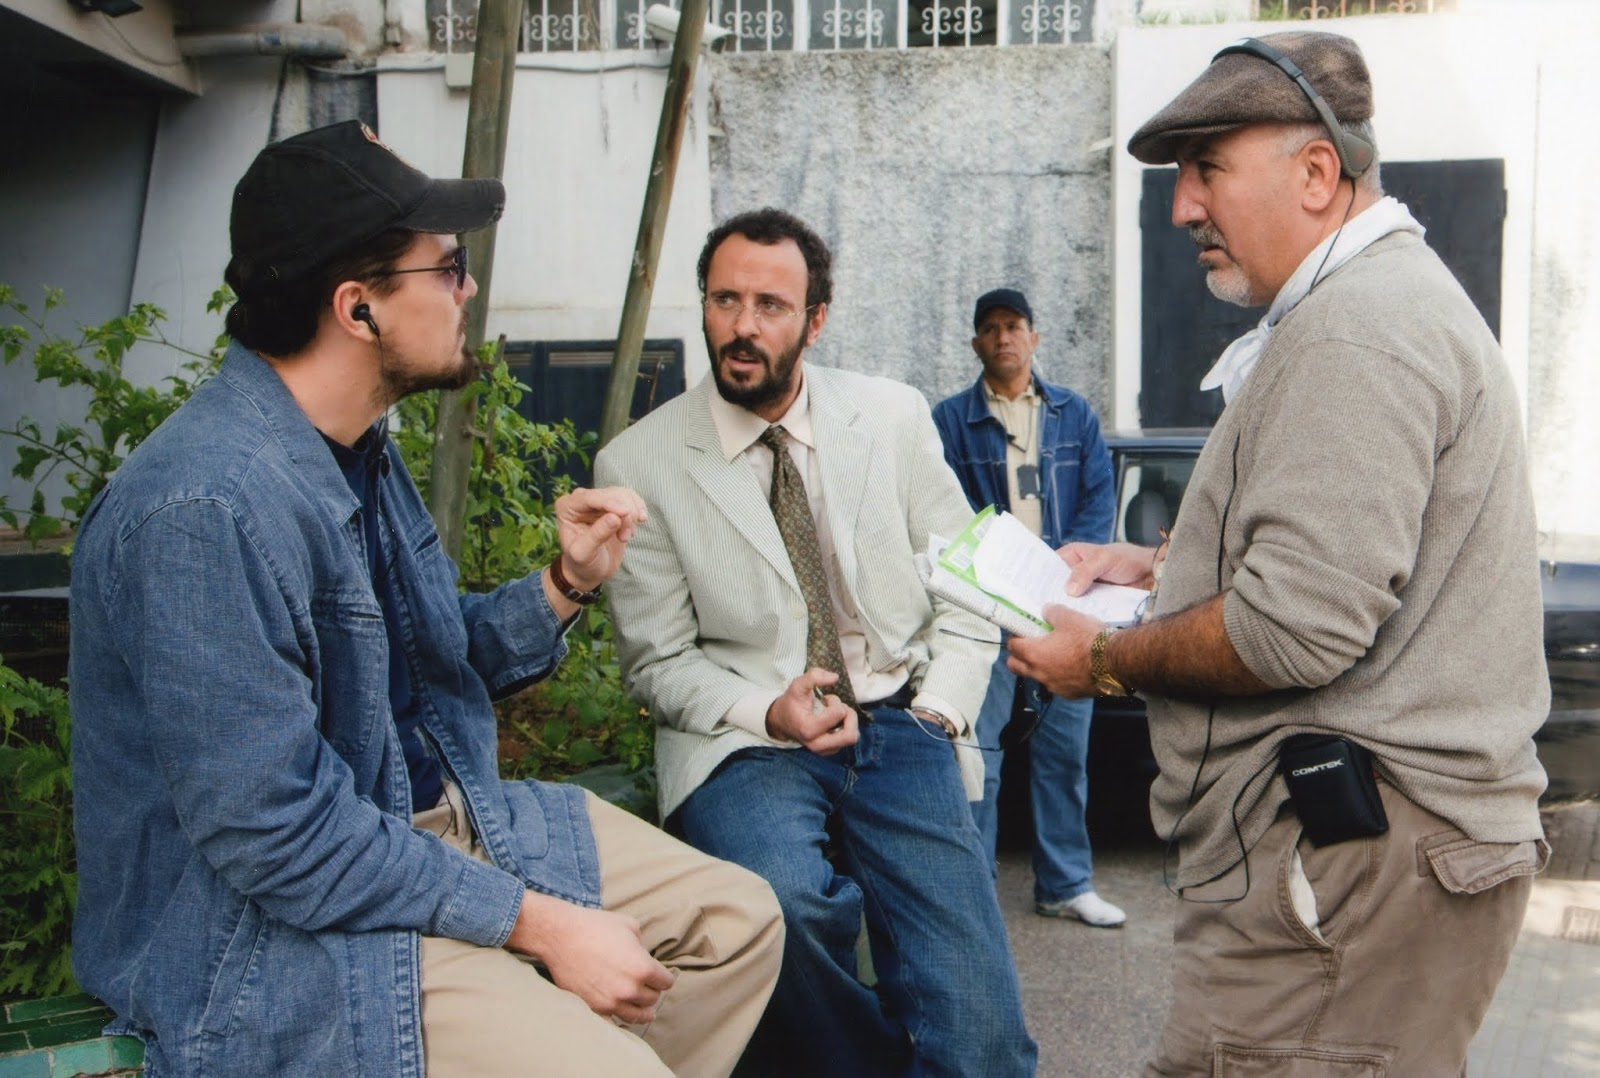 With Leonardo DiCaprio and Ali Soliman, Body of Lies